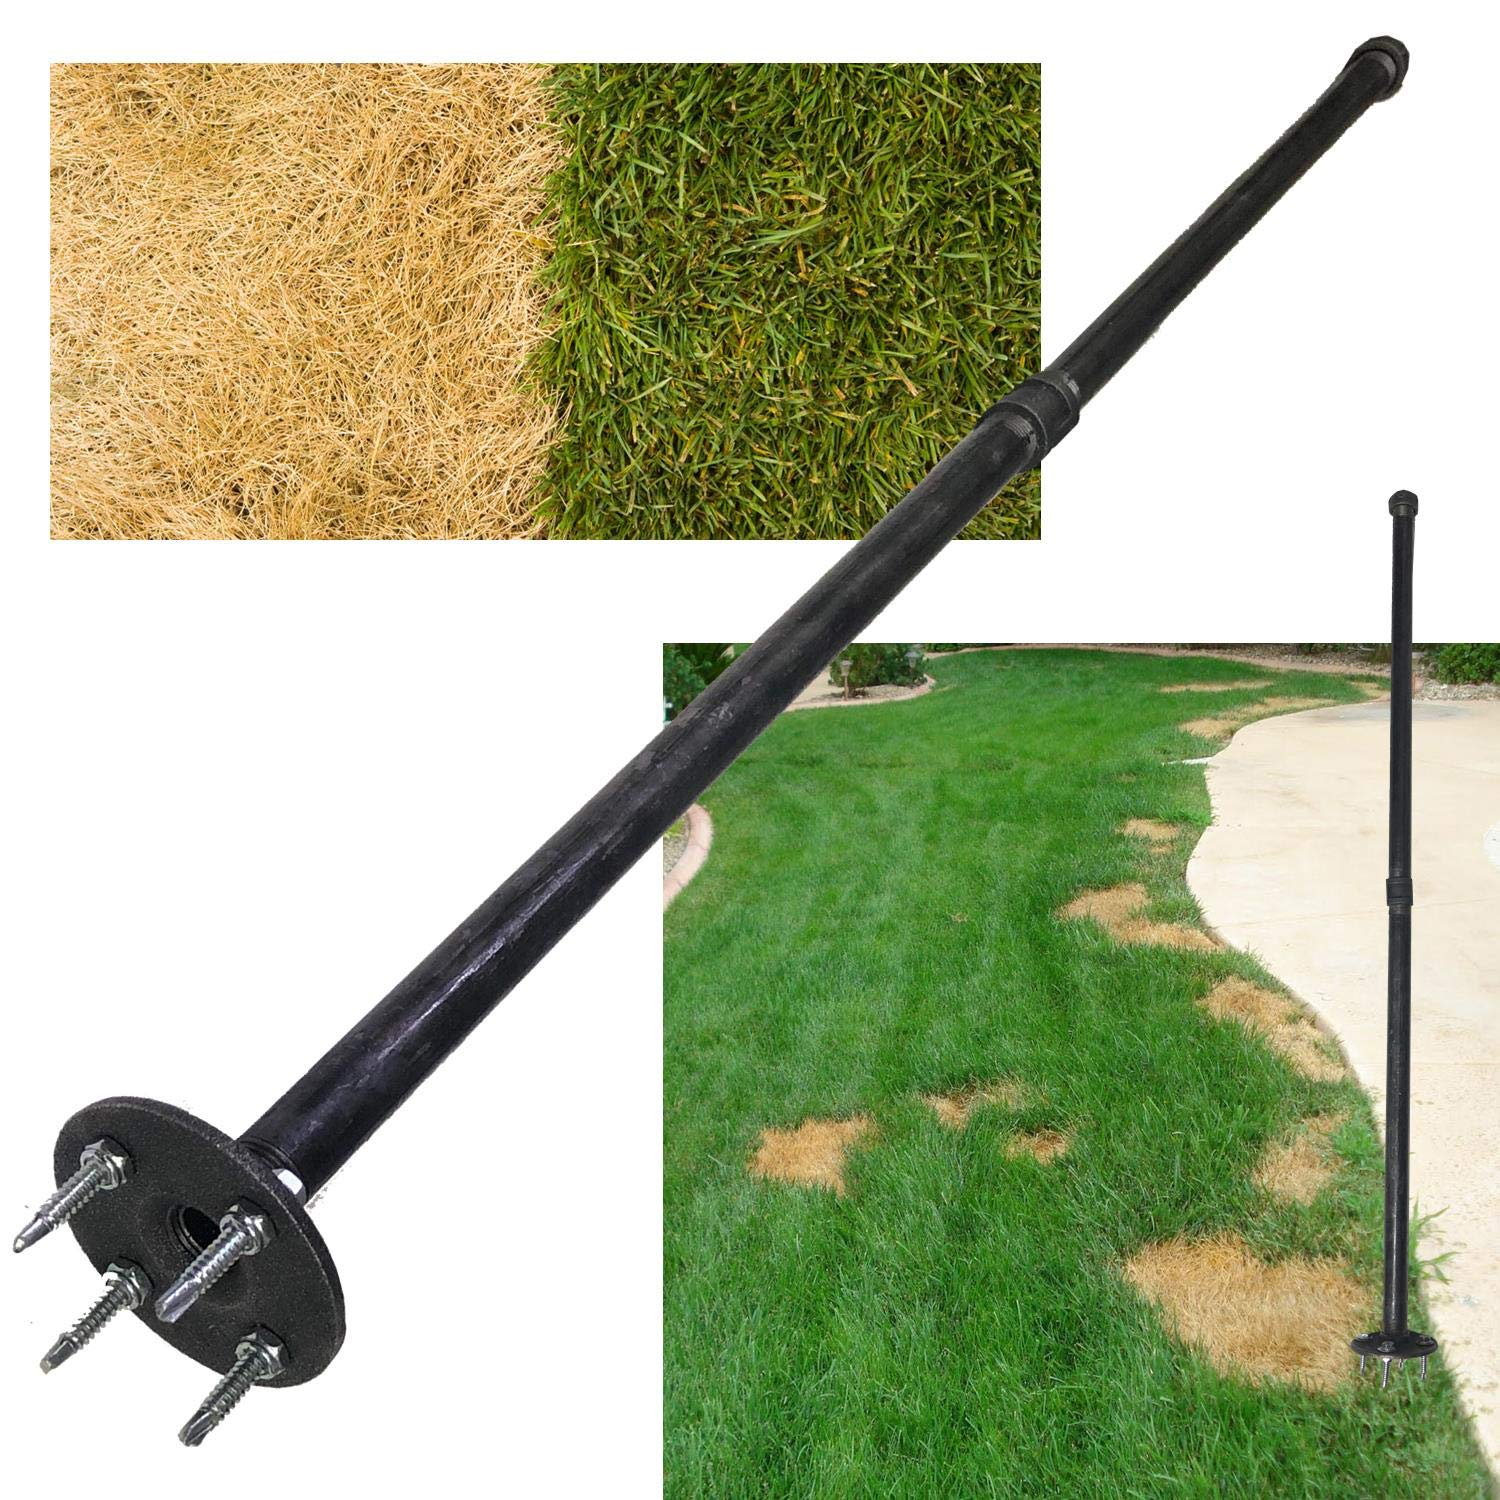 Keyfit Tools Grass Seed SPIKER Dog Spot & Bare Spot Seeding Tool. Get The Most Seed Germination with All Types of Seed & Patch Scotts EZ Seed Repairs Dead Spots Dog Damage Lawn Turf & Grass Repair by Keyfit Tools